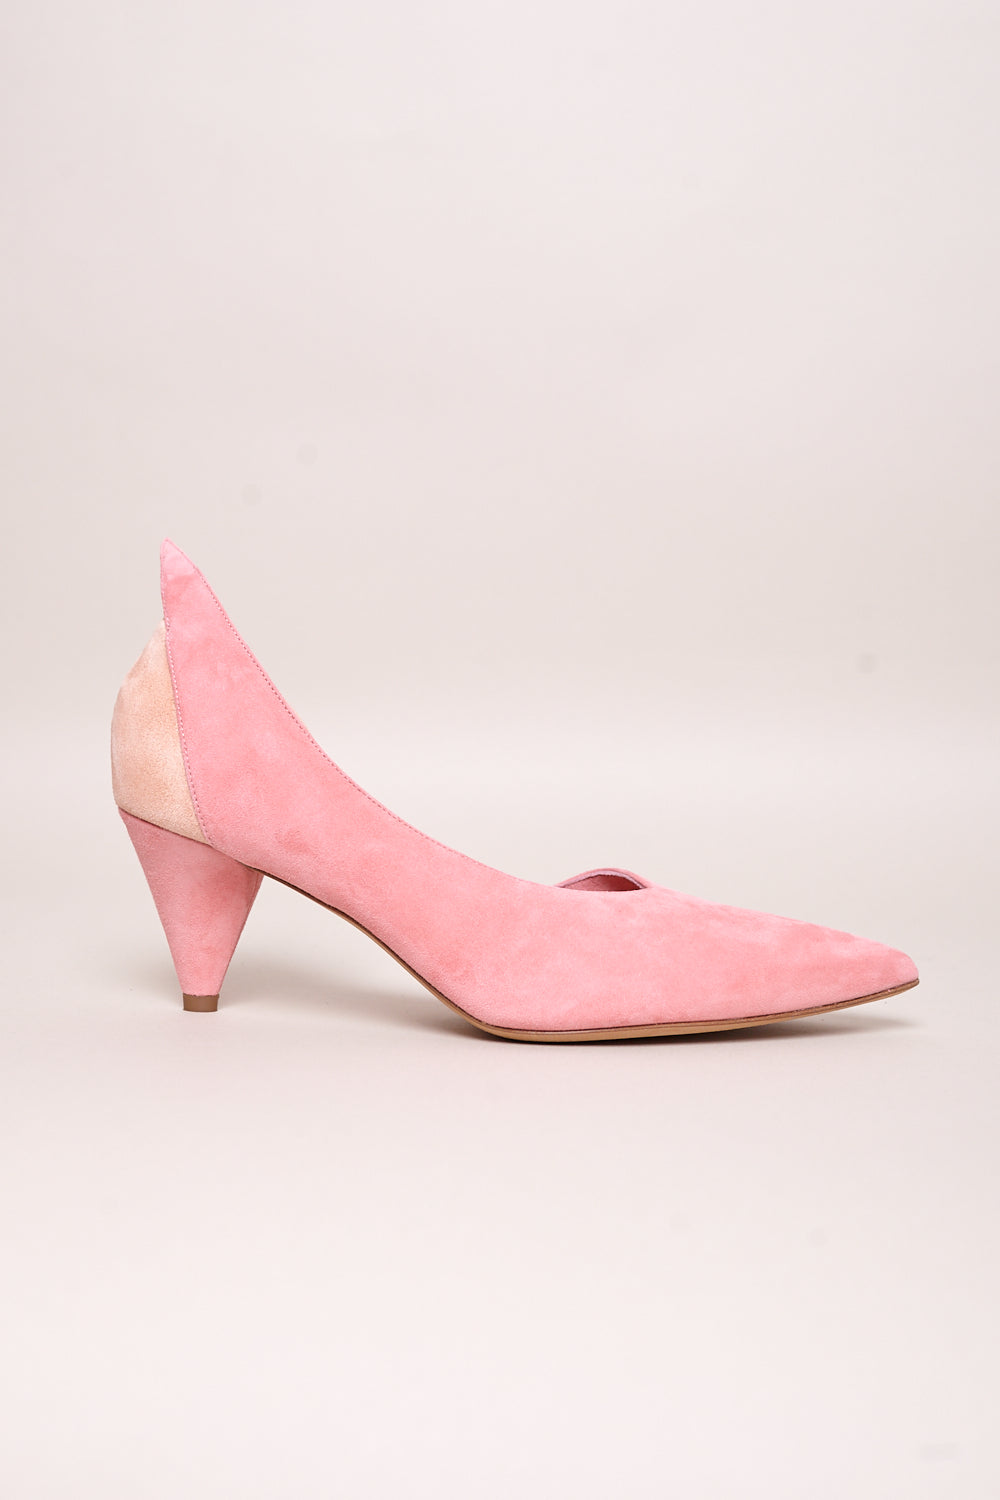 Rachel Comey Fount Heel in Pink - Vert & Vogue